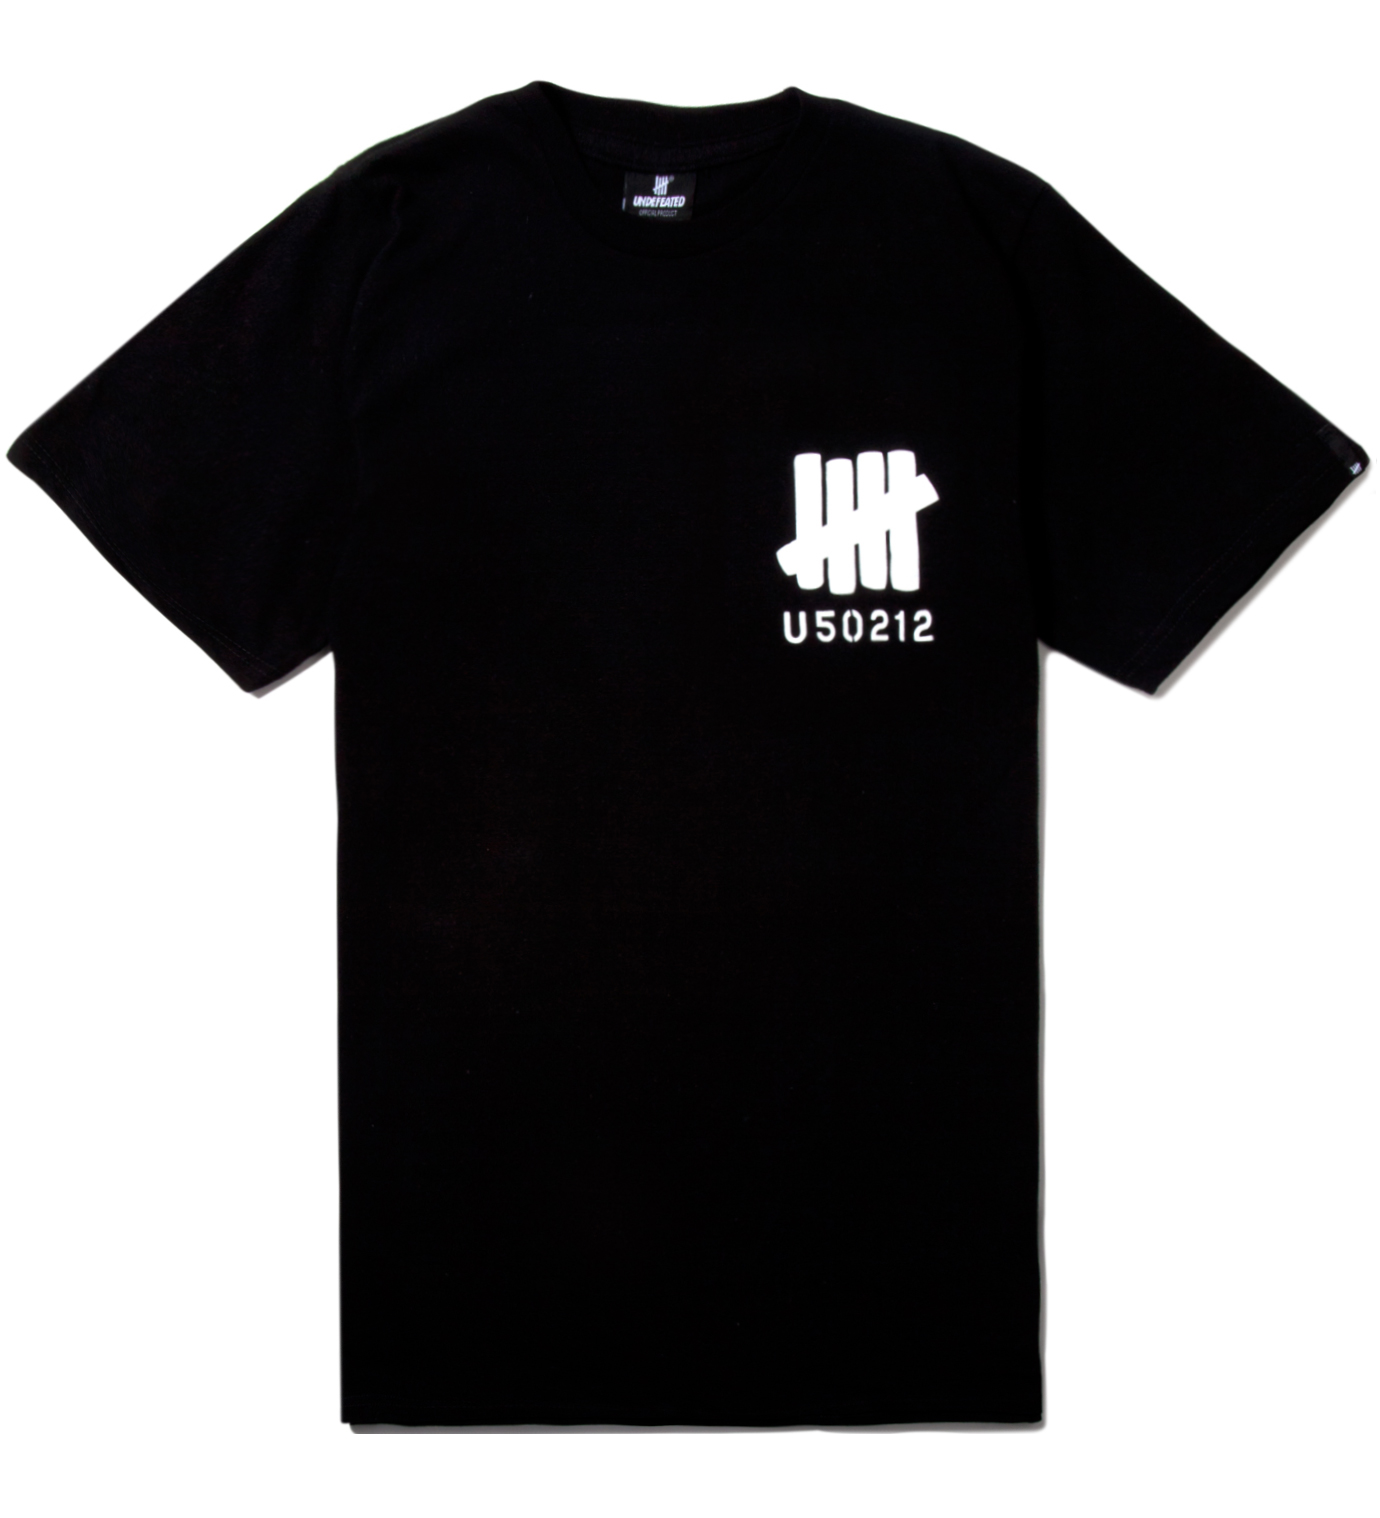 UNDEFEATED Black SS U50212 T-Shirt